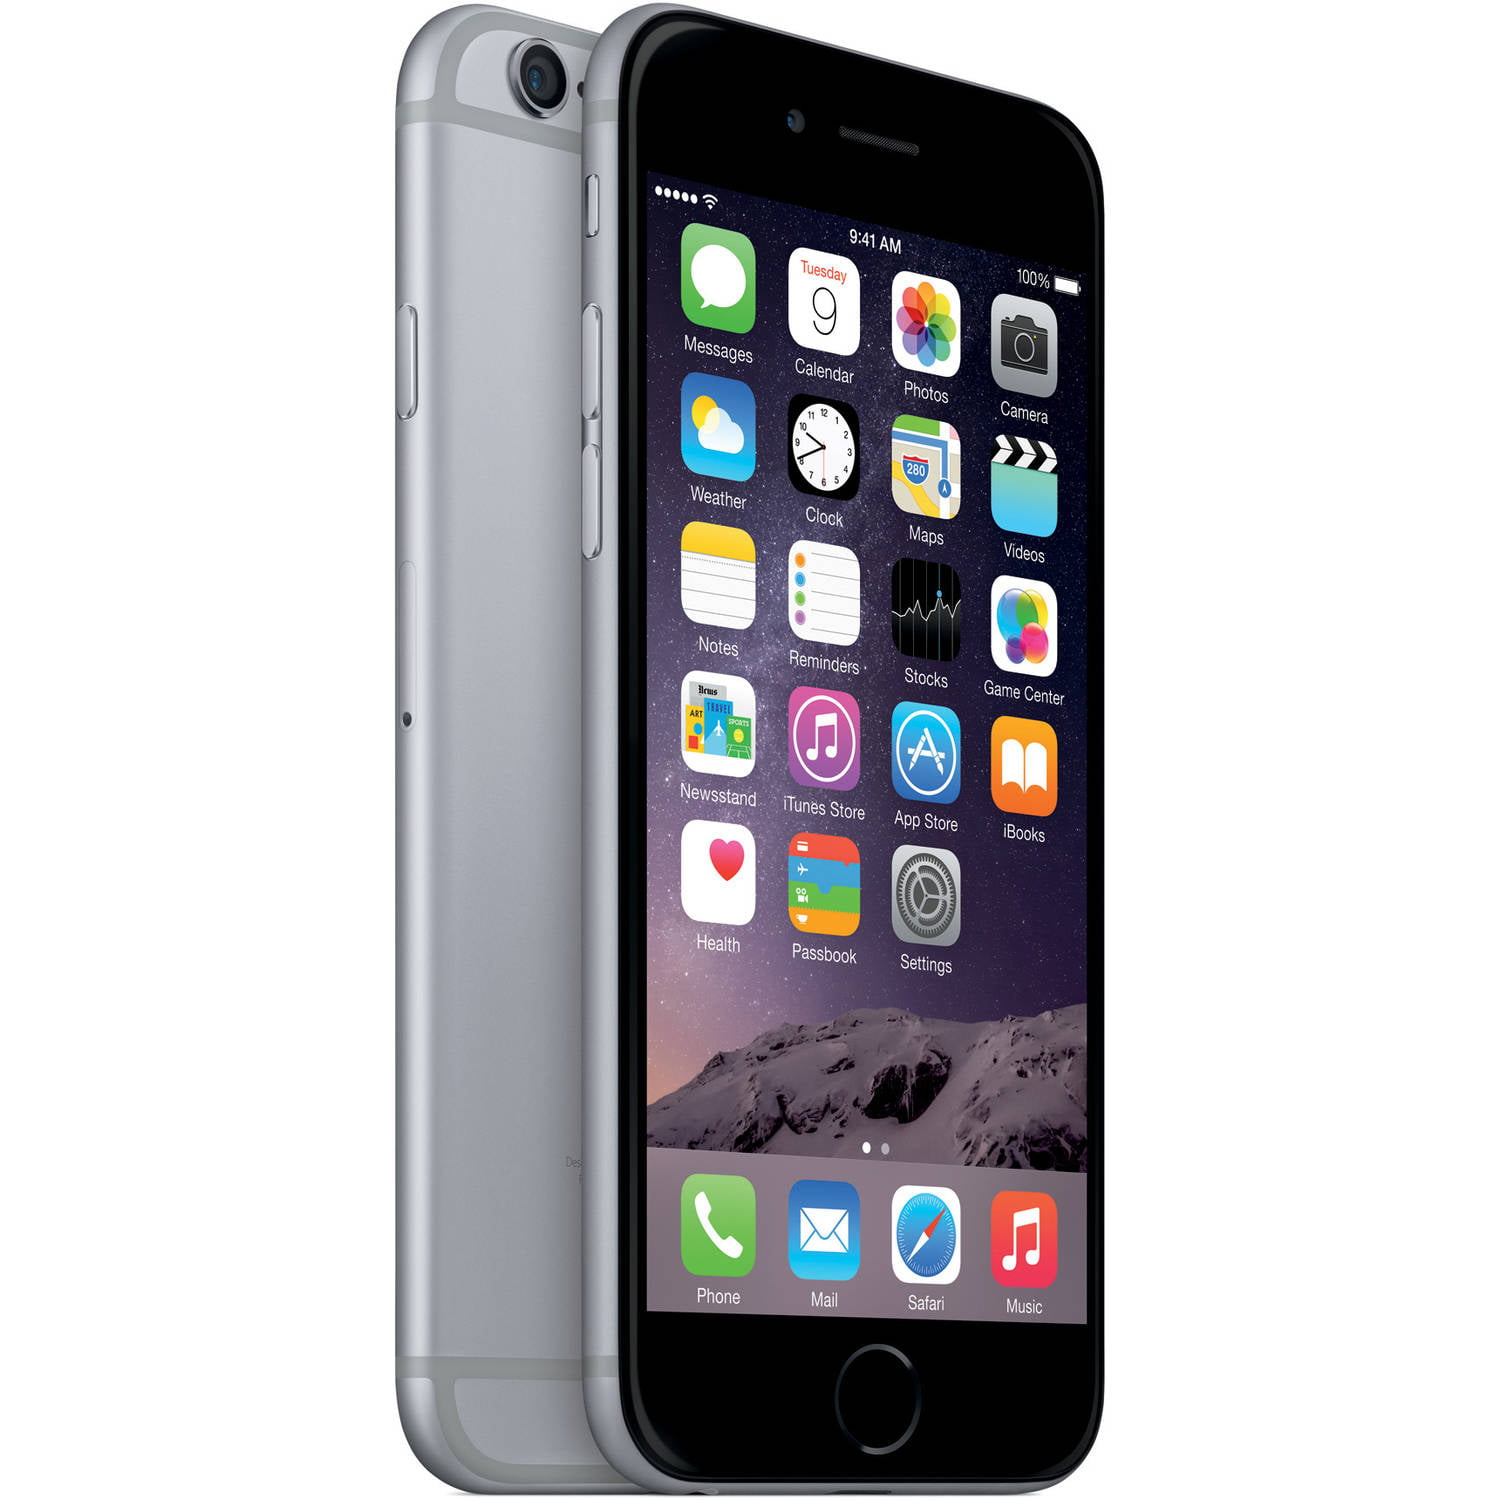 Refurbished Straight Talk iPhone 6 32GB Prepaid Smartphone, Gray by Apple